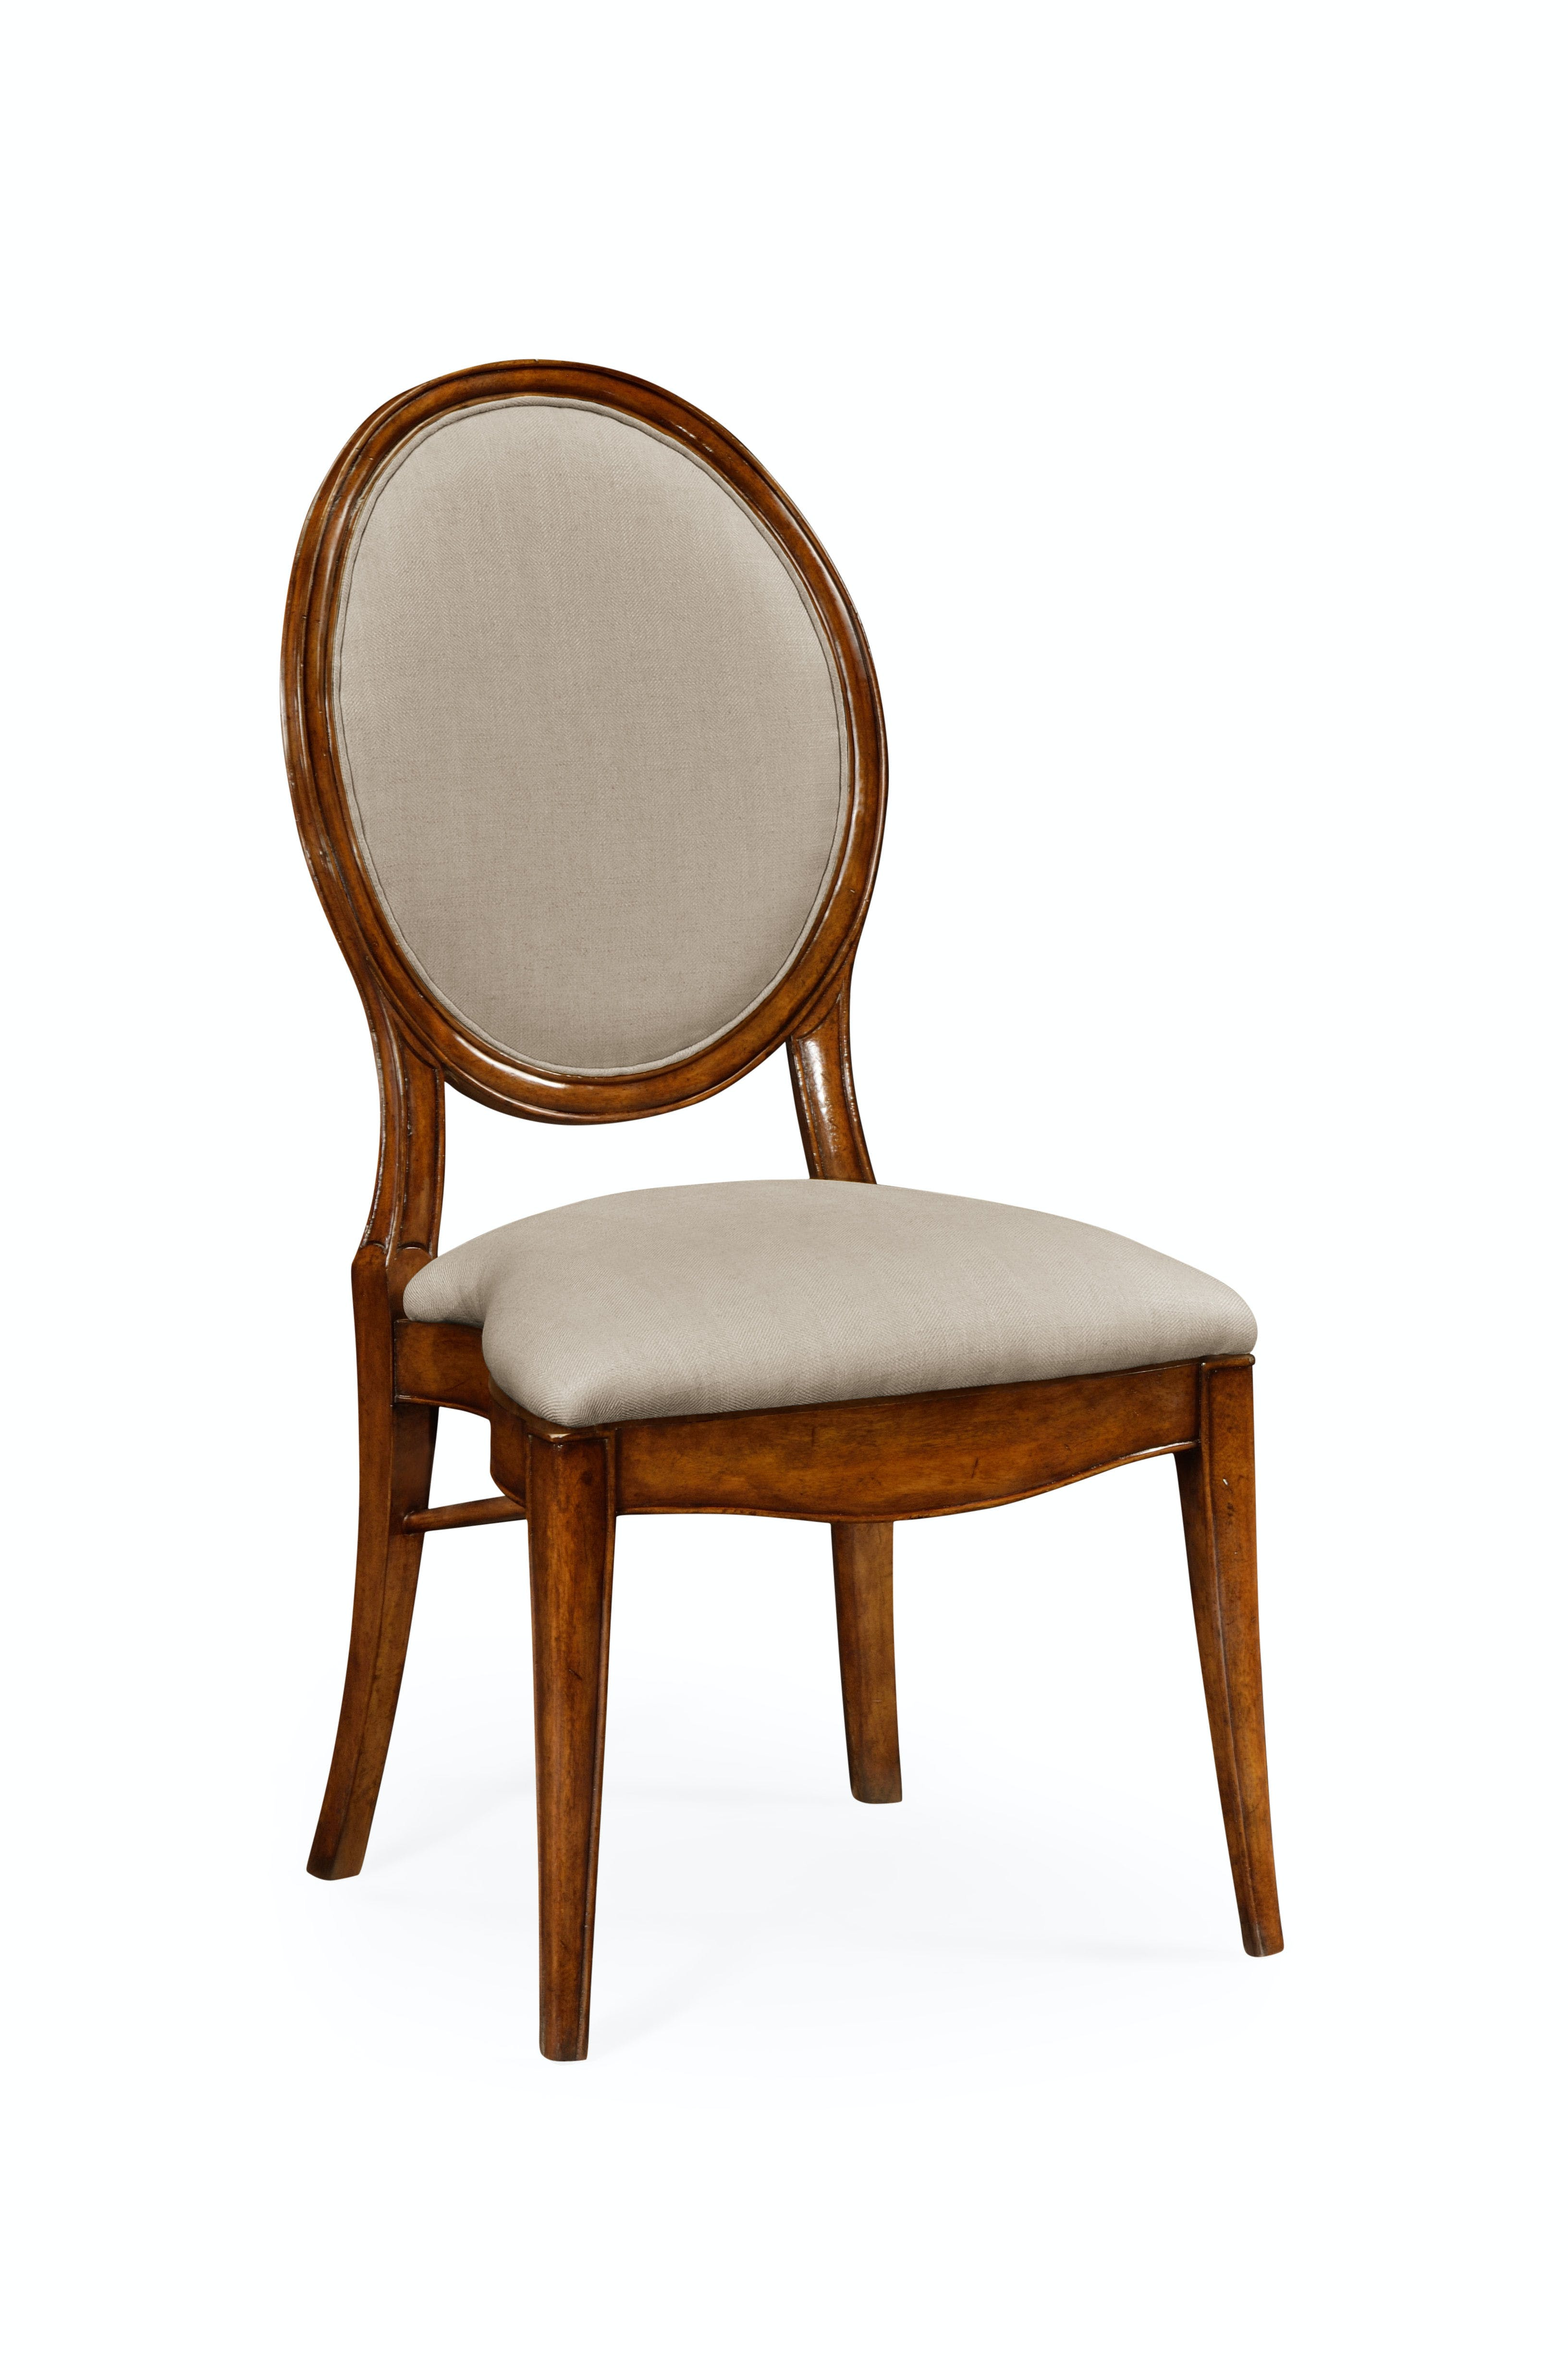 Jonathan Charles Dining Room Spoon Back Upholstered Stacking Dining Chair Upholstered In Mazo Qj495380walf001 Walter E Smithe Furniture Design